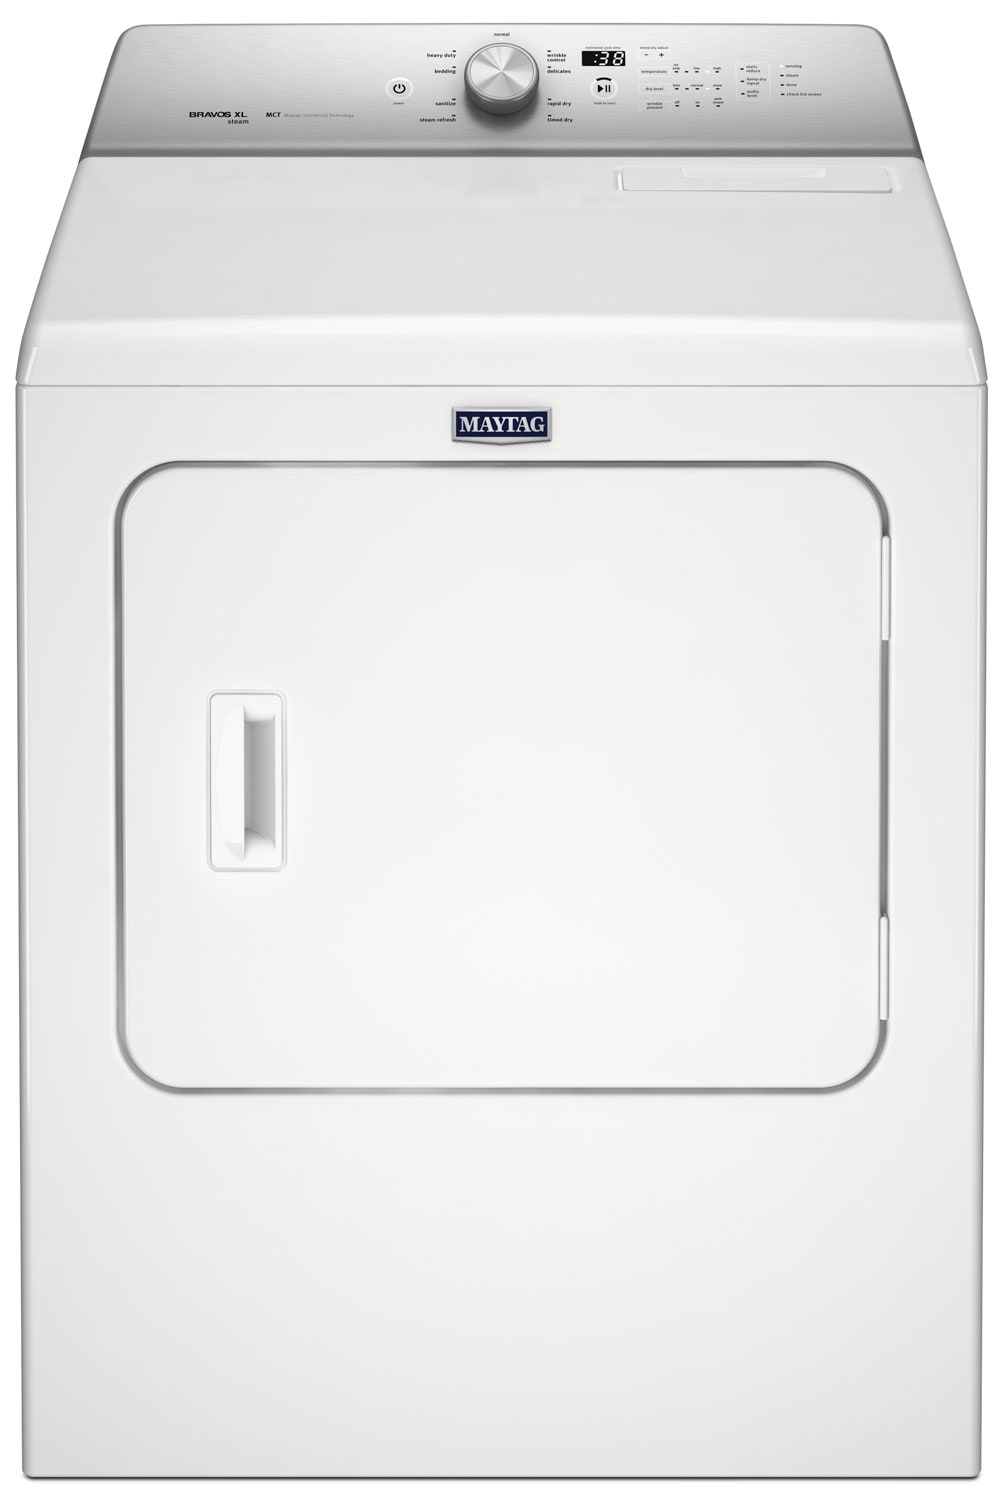 Washers and Dryers - Maytag Dryer (7.0 Cu. Ft.) YMEDB755DW